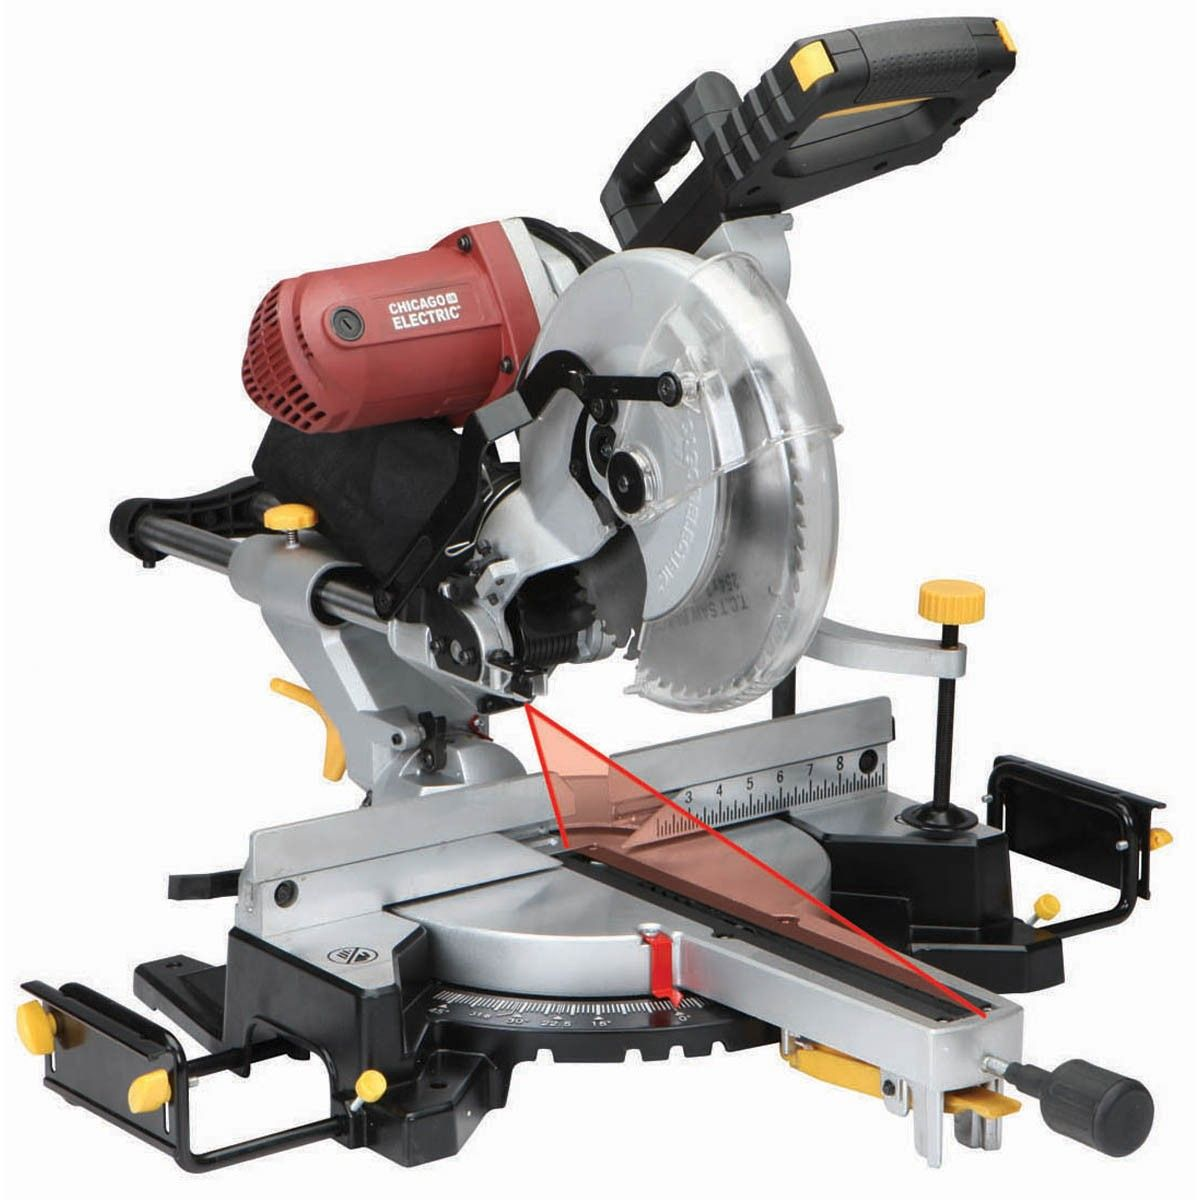 Pin By Nicky Marley On Herramientas In 2020 Sliding Compound Miter Saw Miter Saw Reviews Sliding Mitre Saw